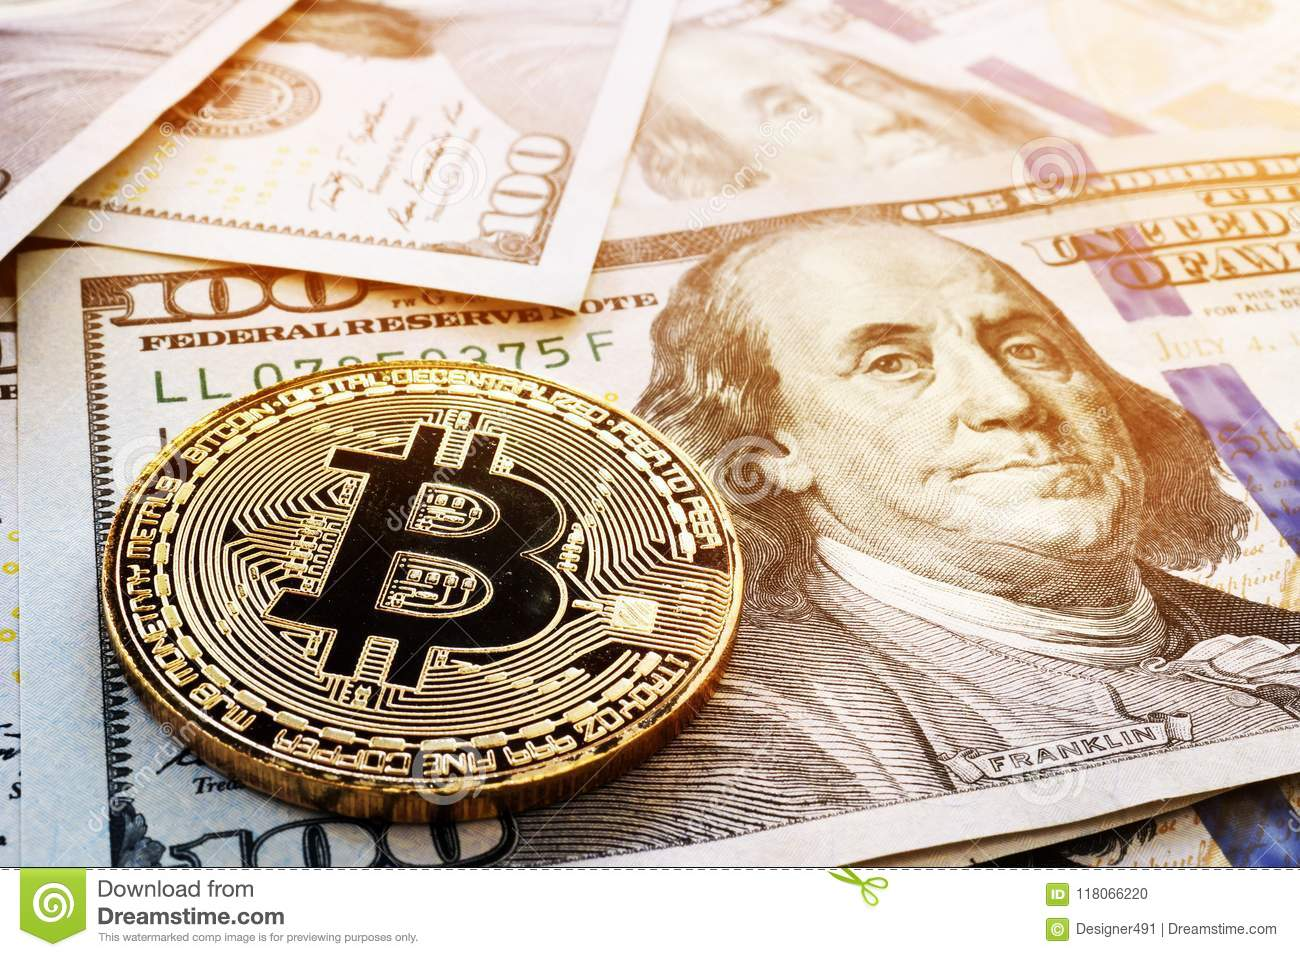 how to sell bitcoin for dollars